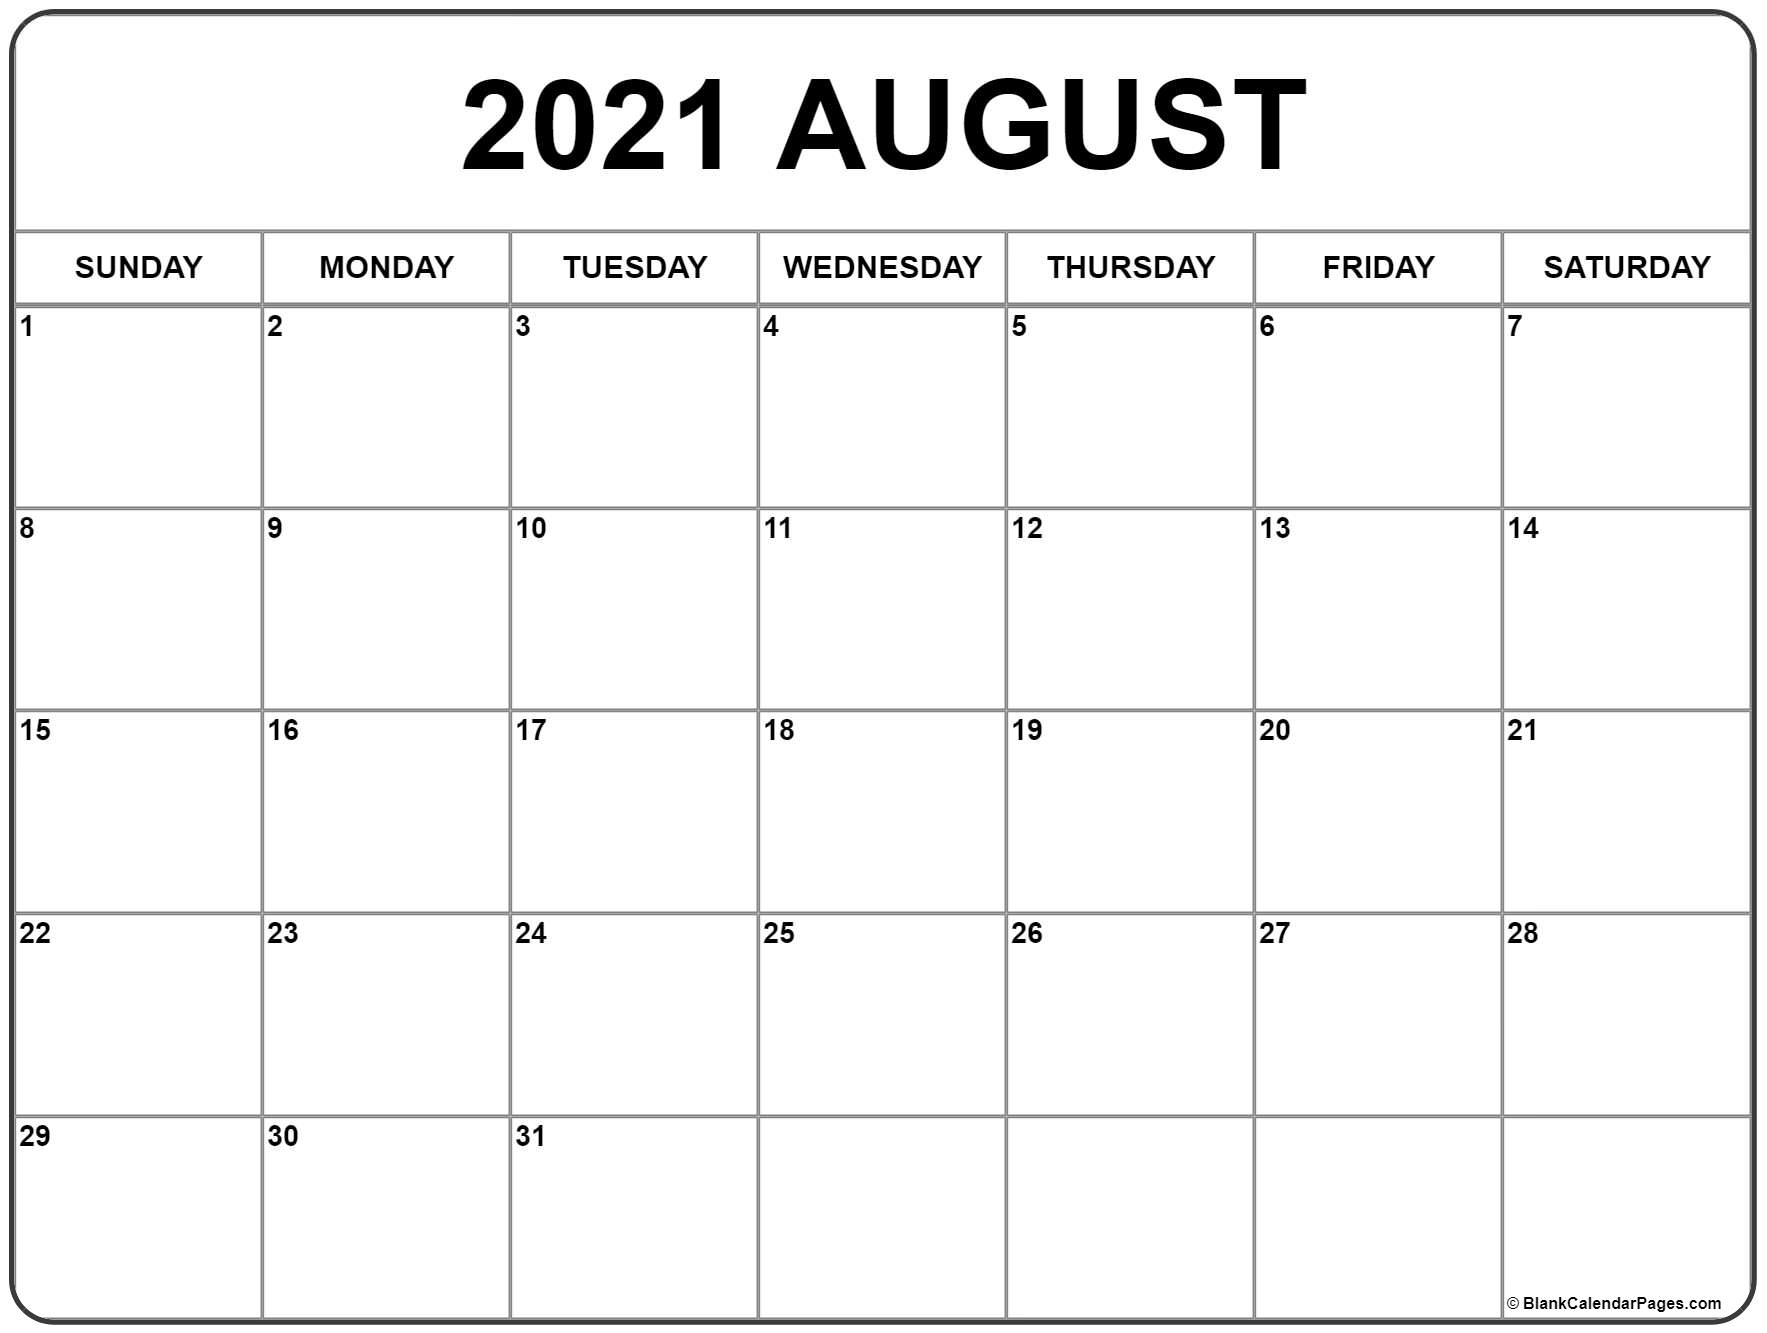 Collect Leo August 2021 Calender